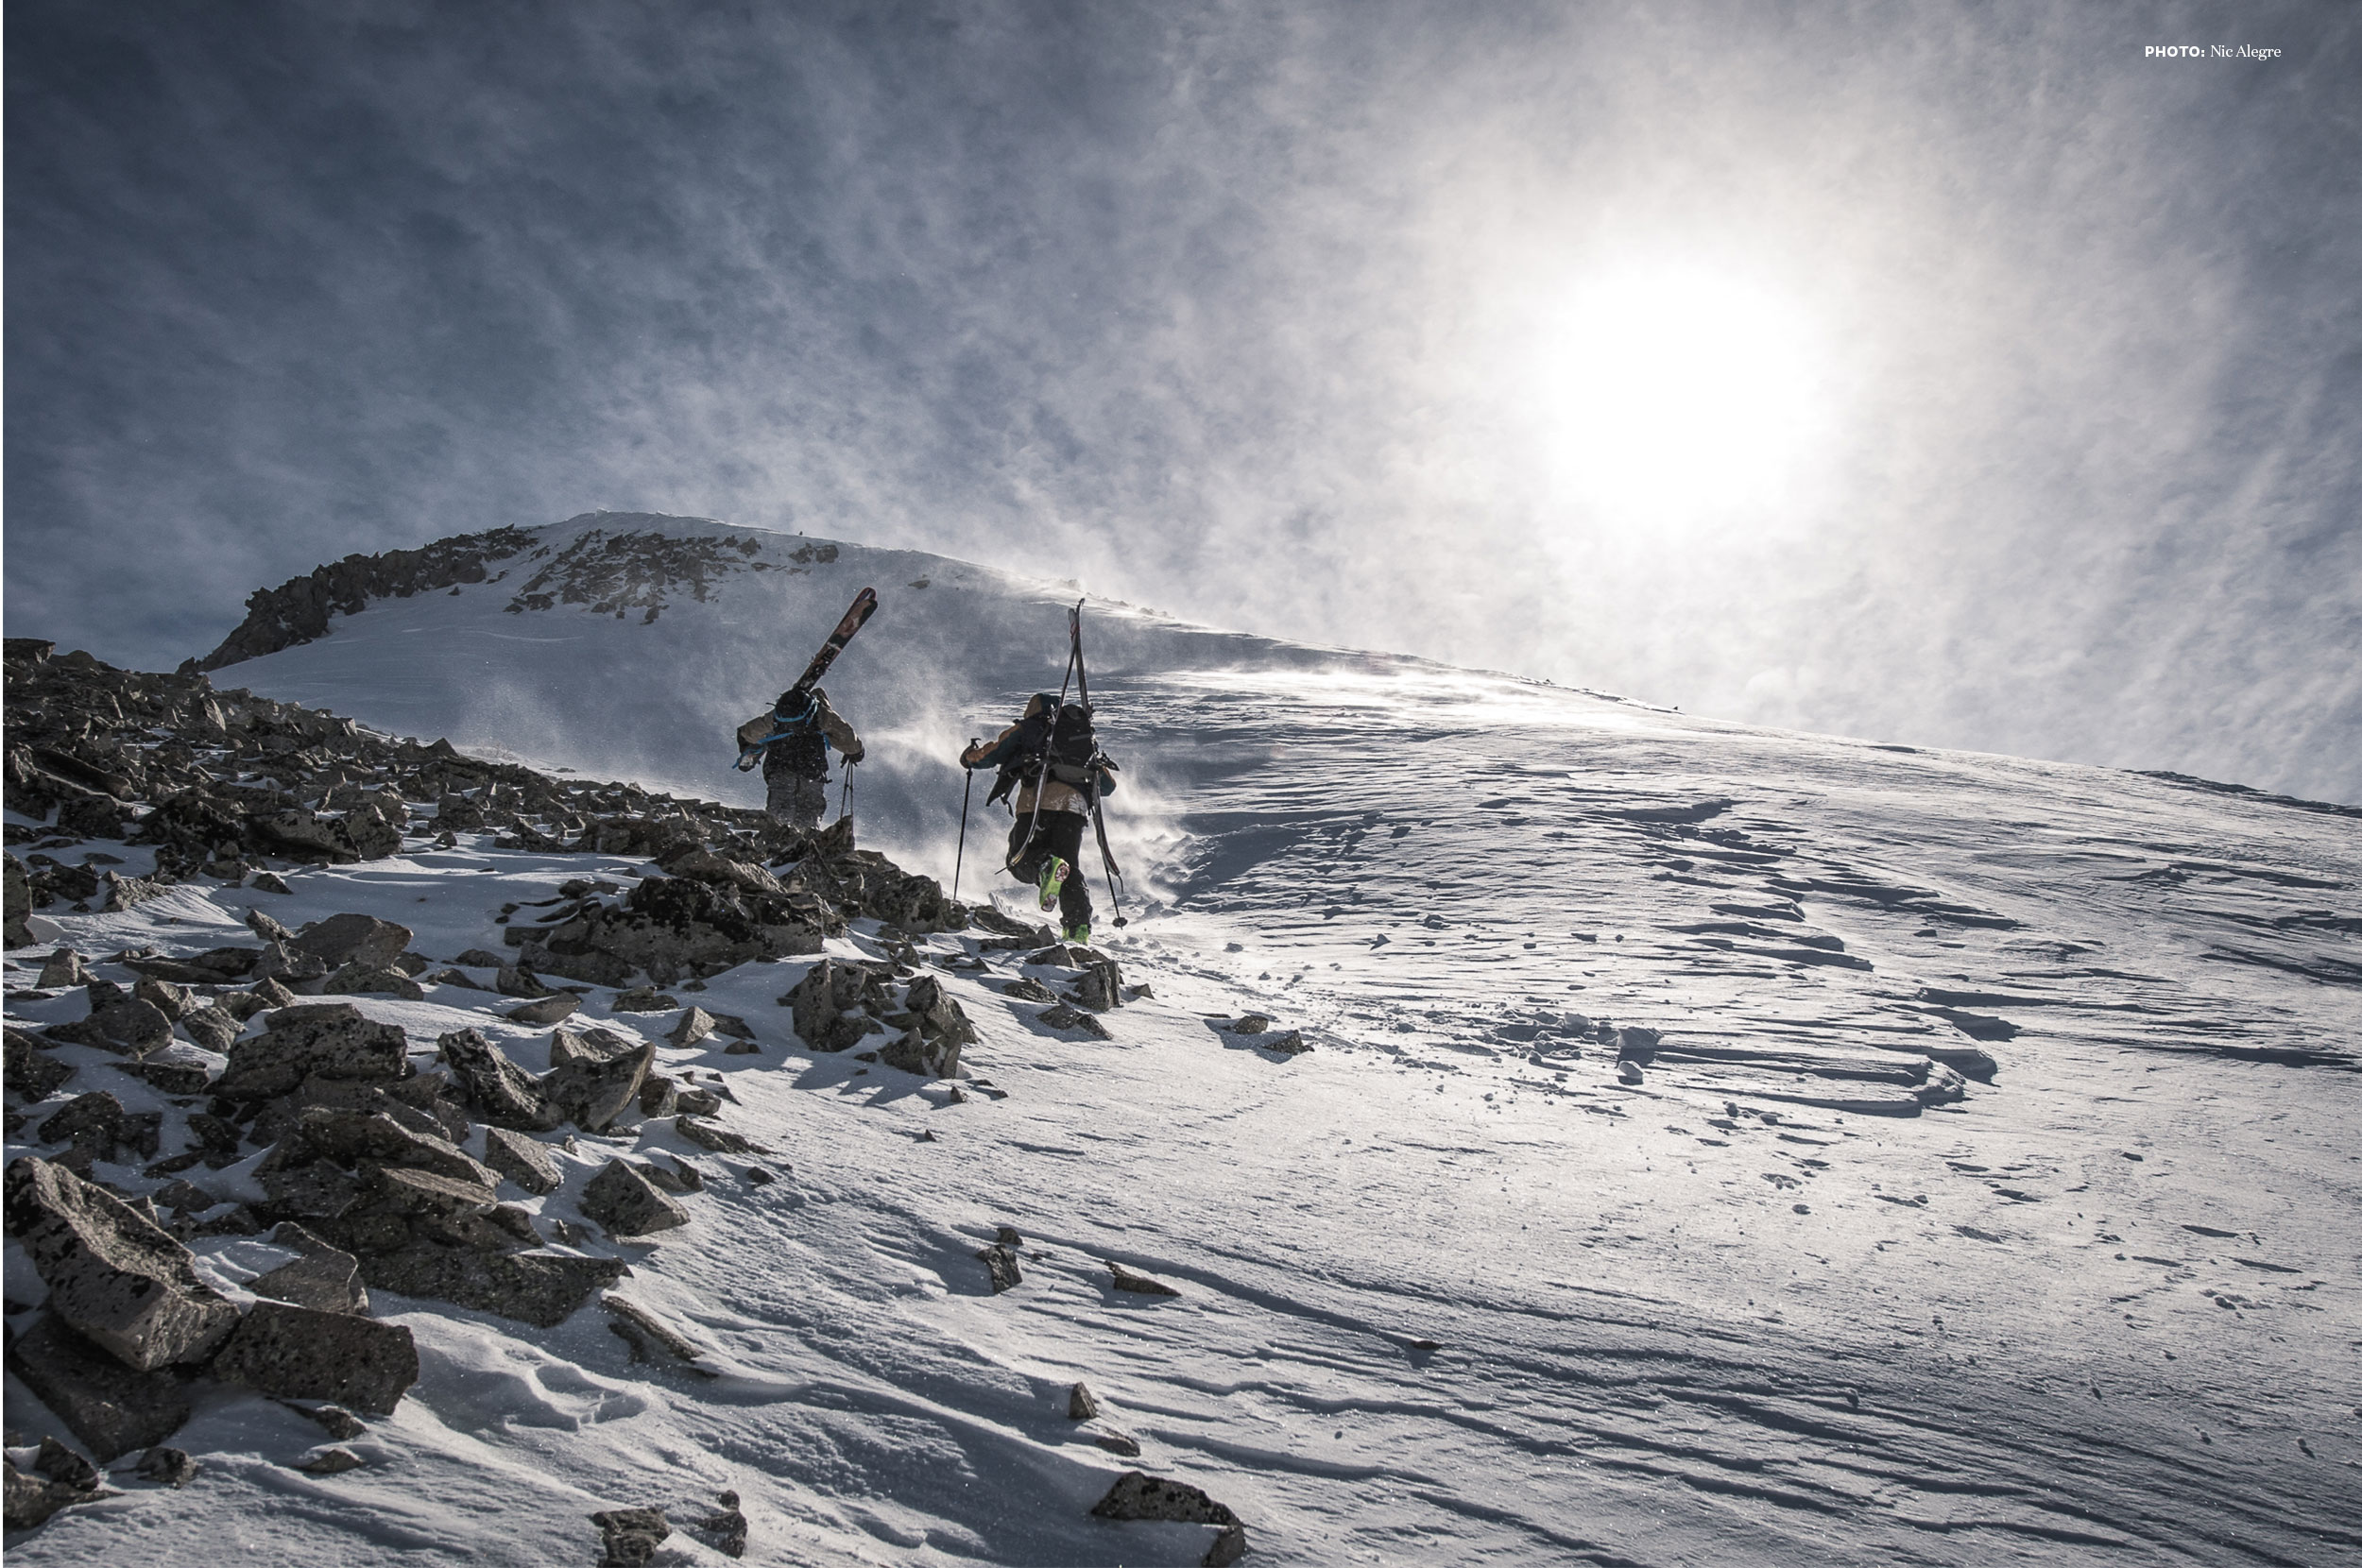 Skiers hiking up a mountain in the La Sals, Utah